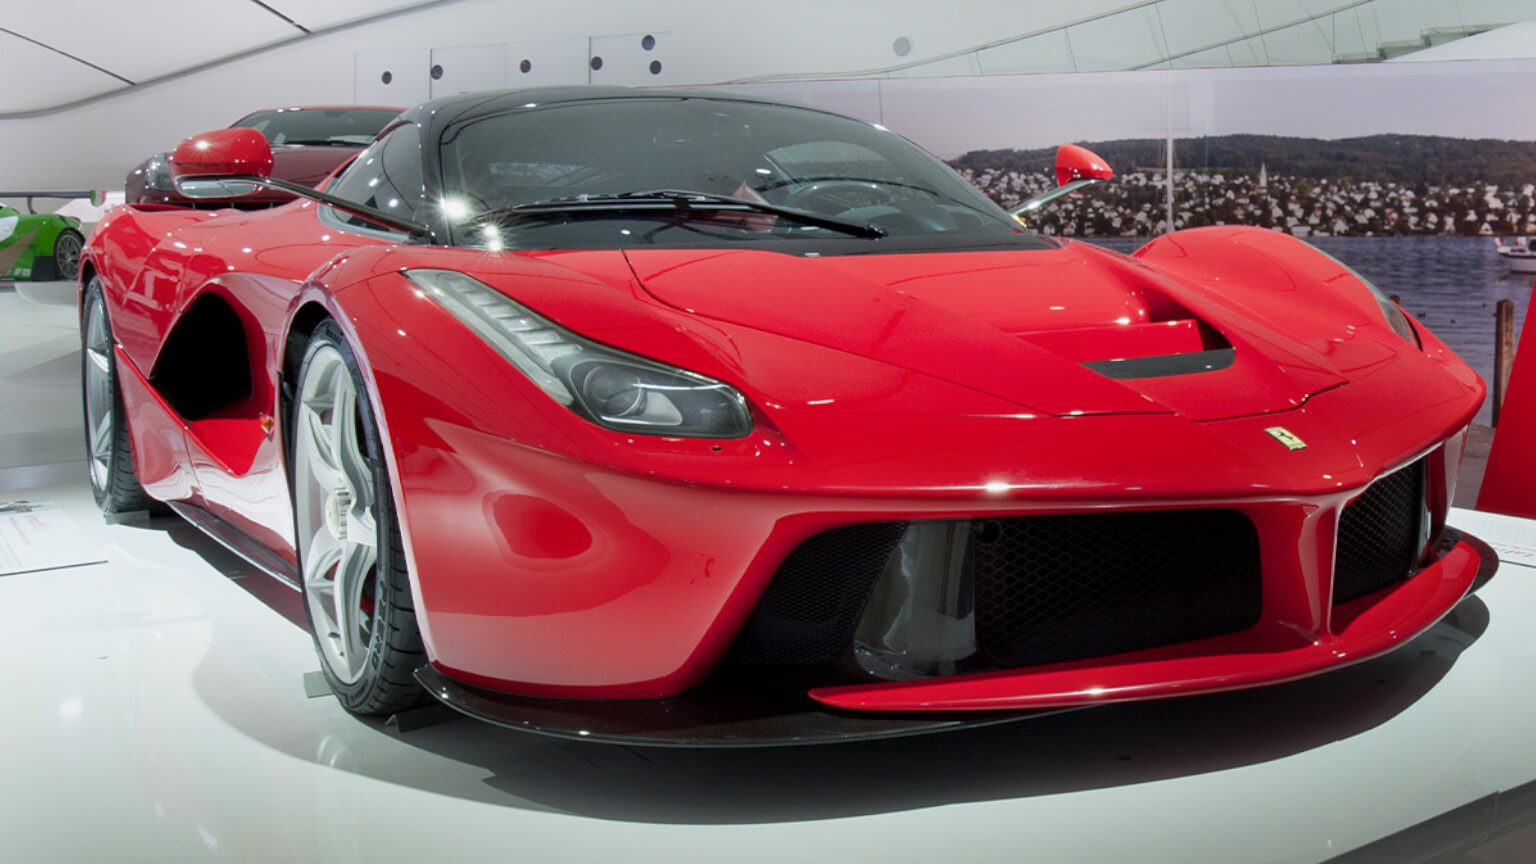 Front view of a red LaFerrari